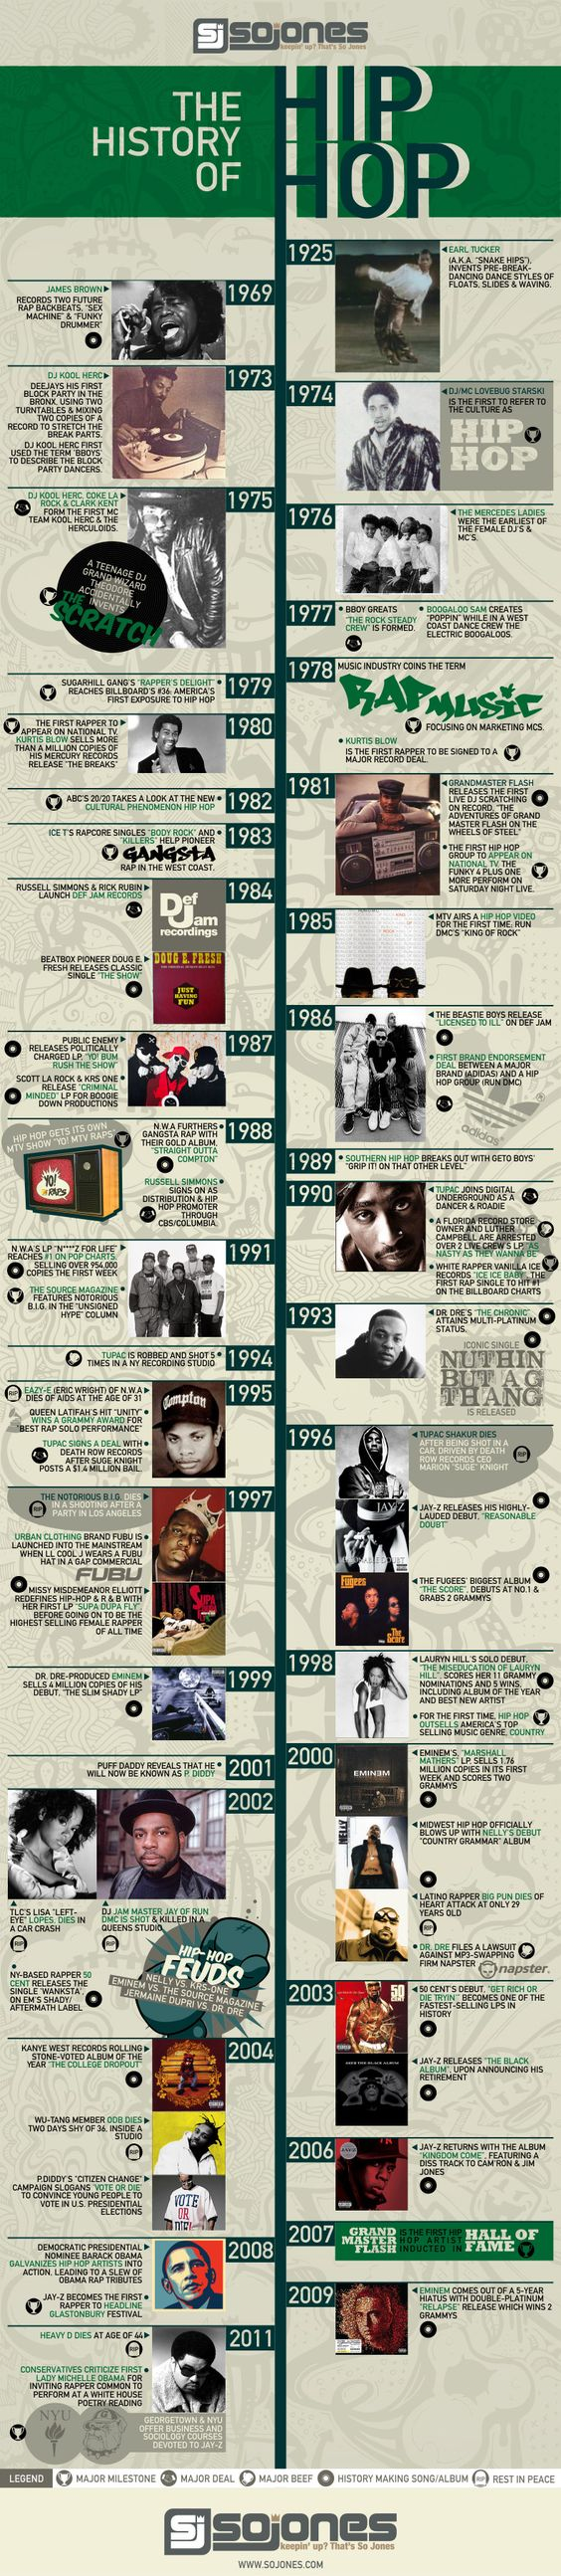 There is a prevailing myth that revolves around the hip hop world that it is only African-Americans who listen to this genre of music, enjoy it, or promote it. Some believe that African-Americans were the first to create. As the statistics show, however, myths are very different from what reality happens to be. Almost two